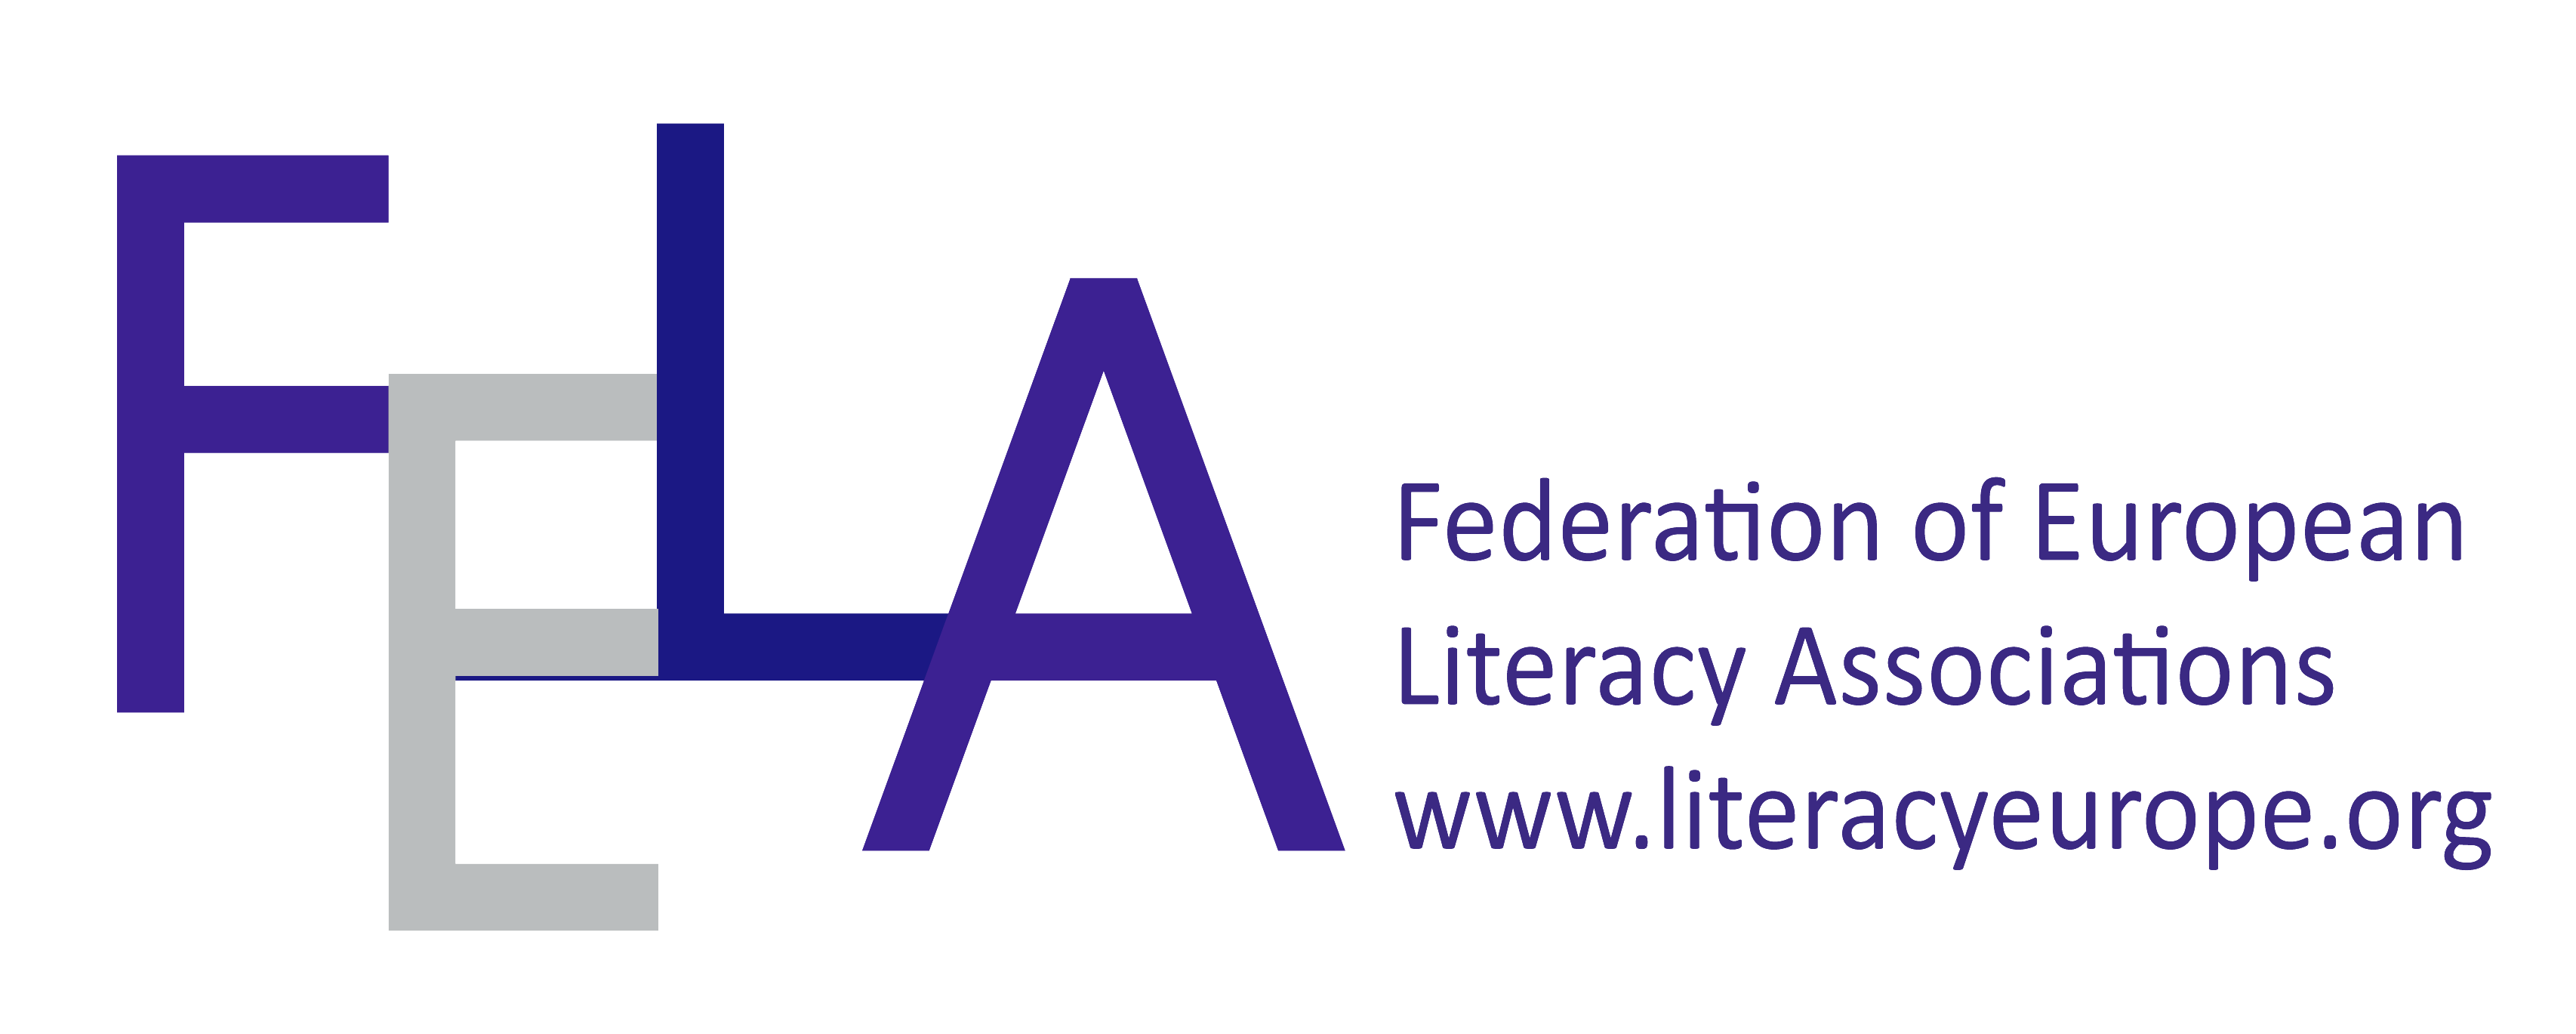 Federation of European Literacy Associations